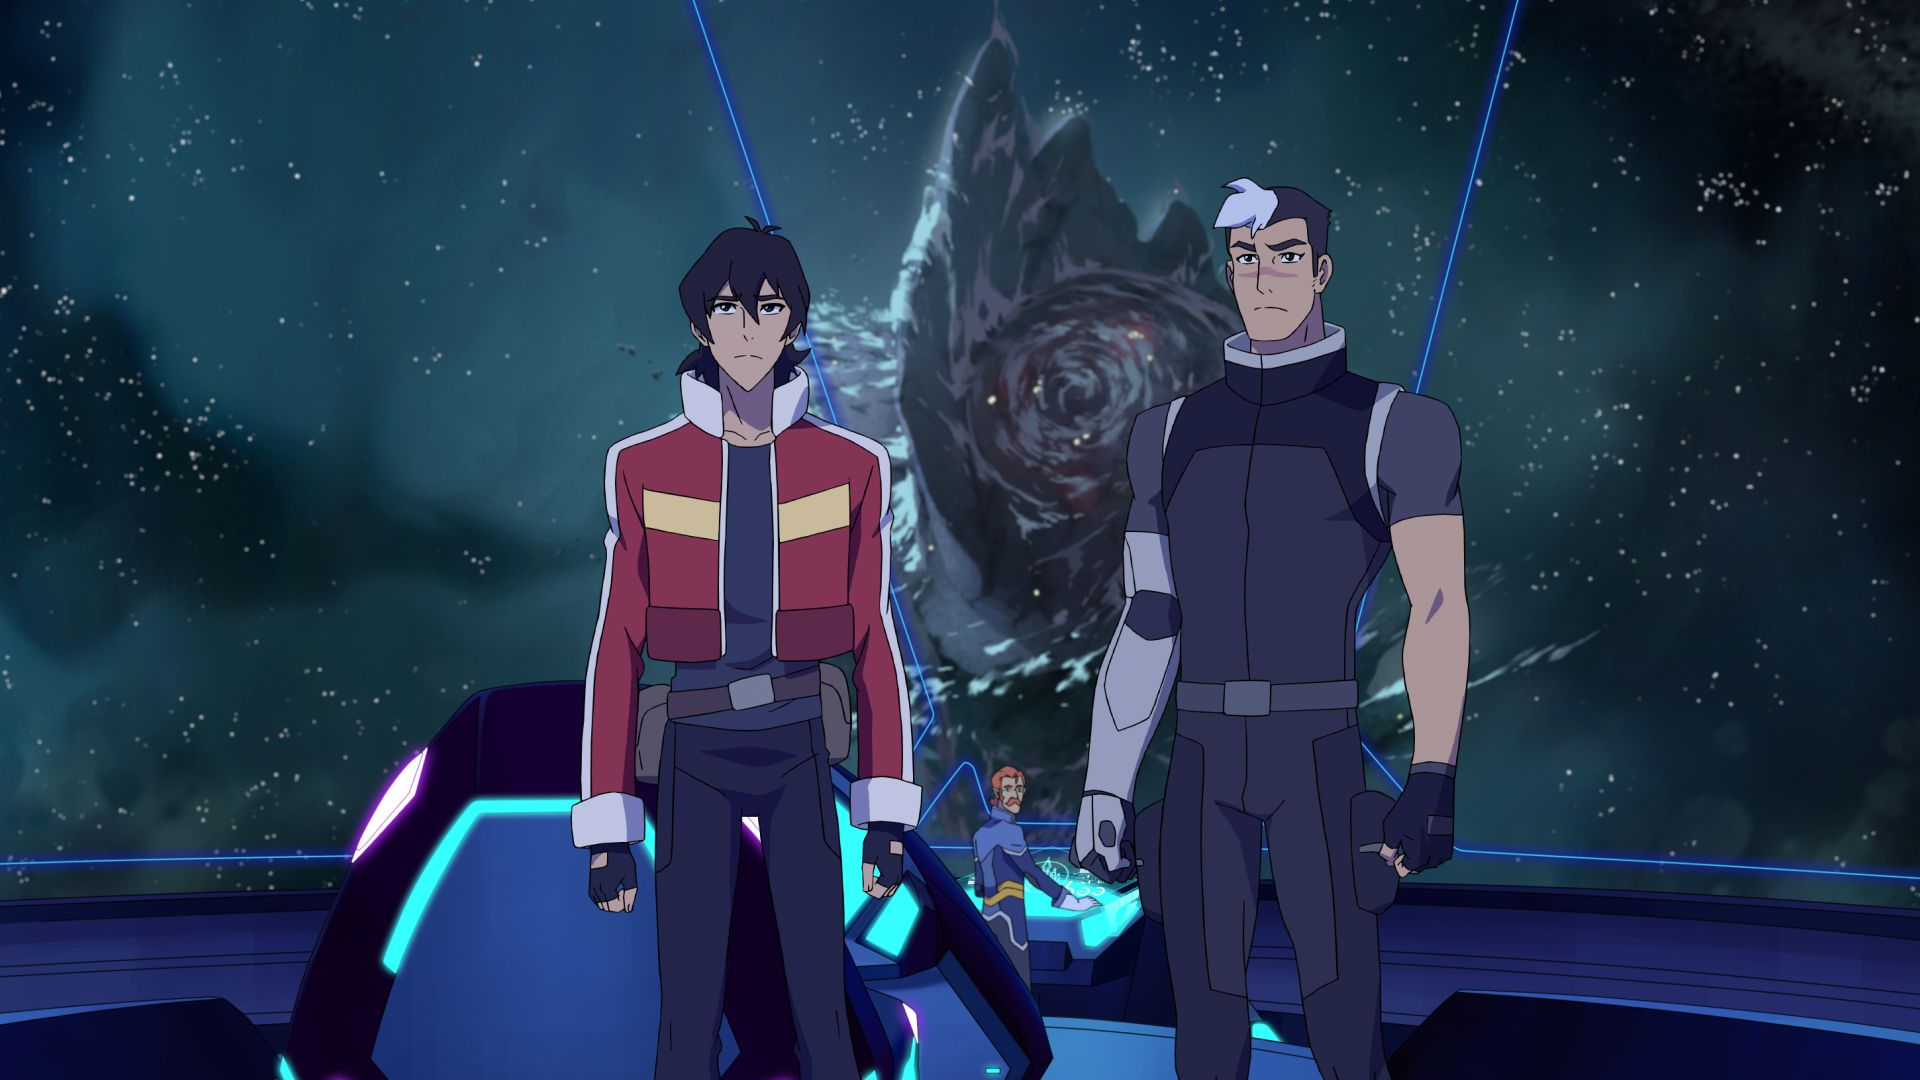 Voltron Season 7 Episode 1 Focuses On The Shiro Keith Relationship